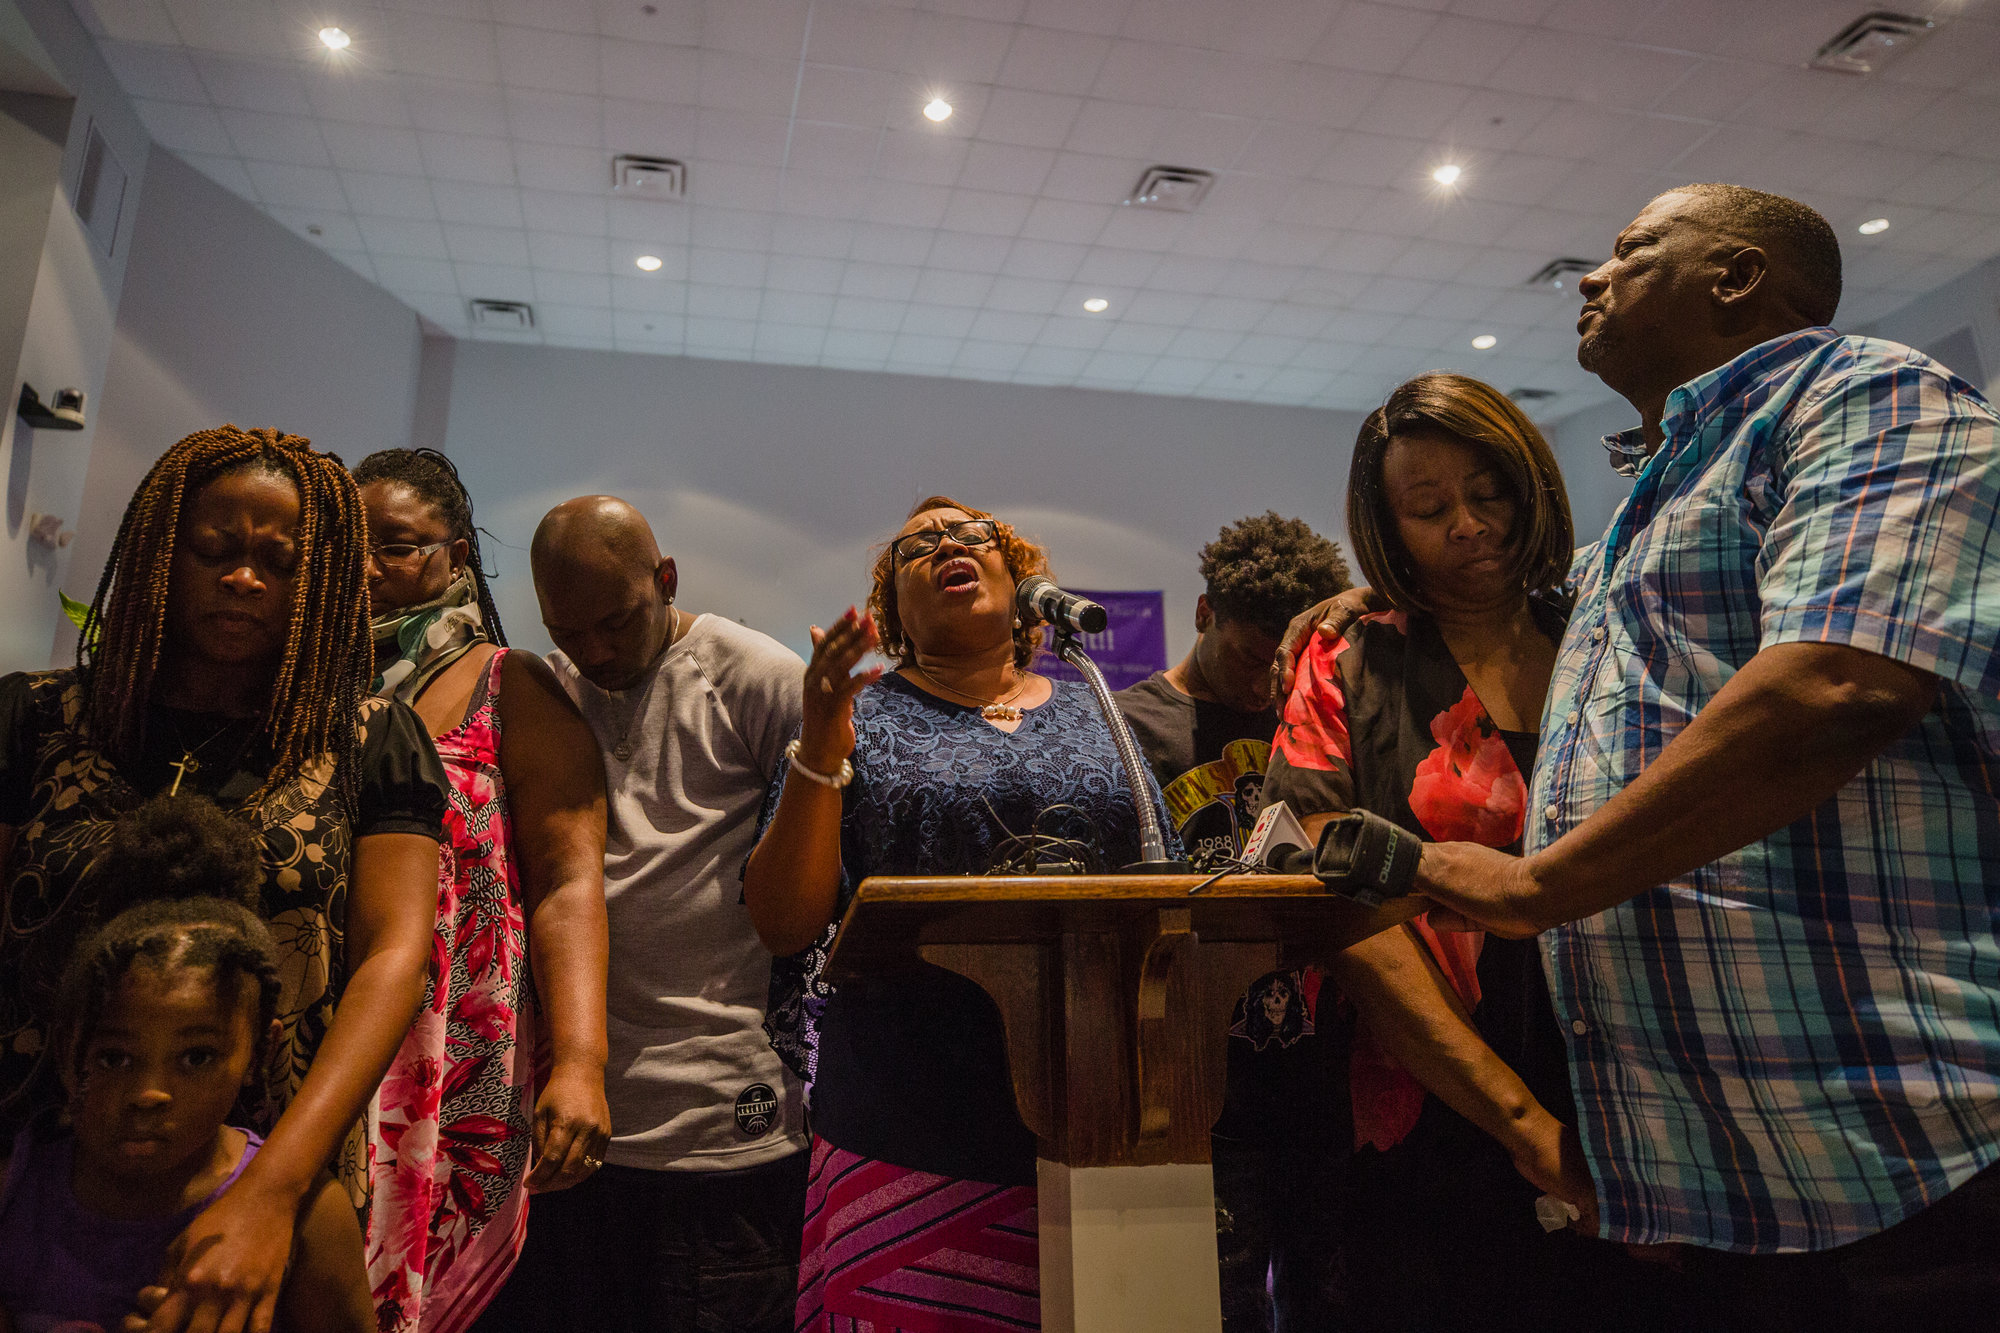 Minister Cleo Jackson prays with members of Nevaeh Adams' and Sharee Bradley's family during a prayer vigil at Trinity Missionary Baptist Church on Wednesday.